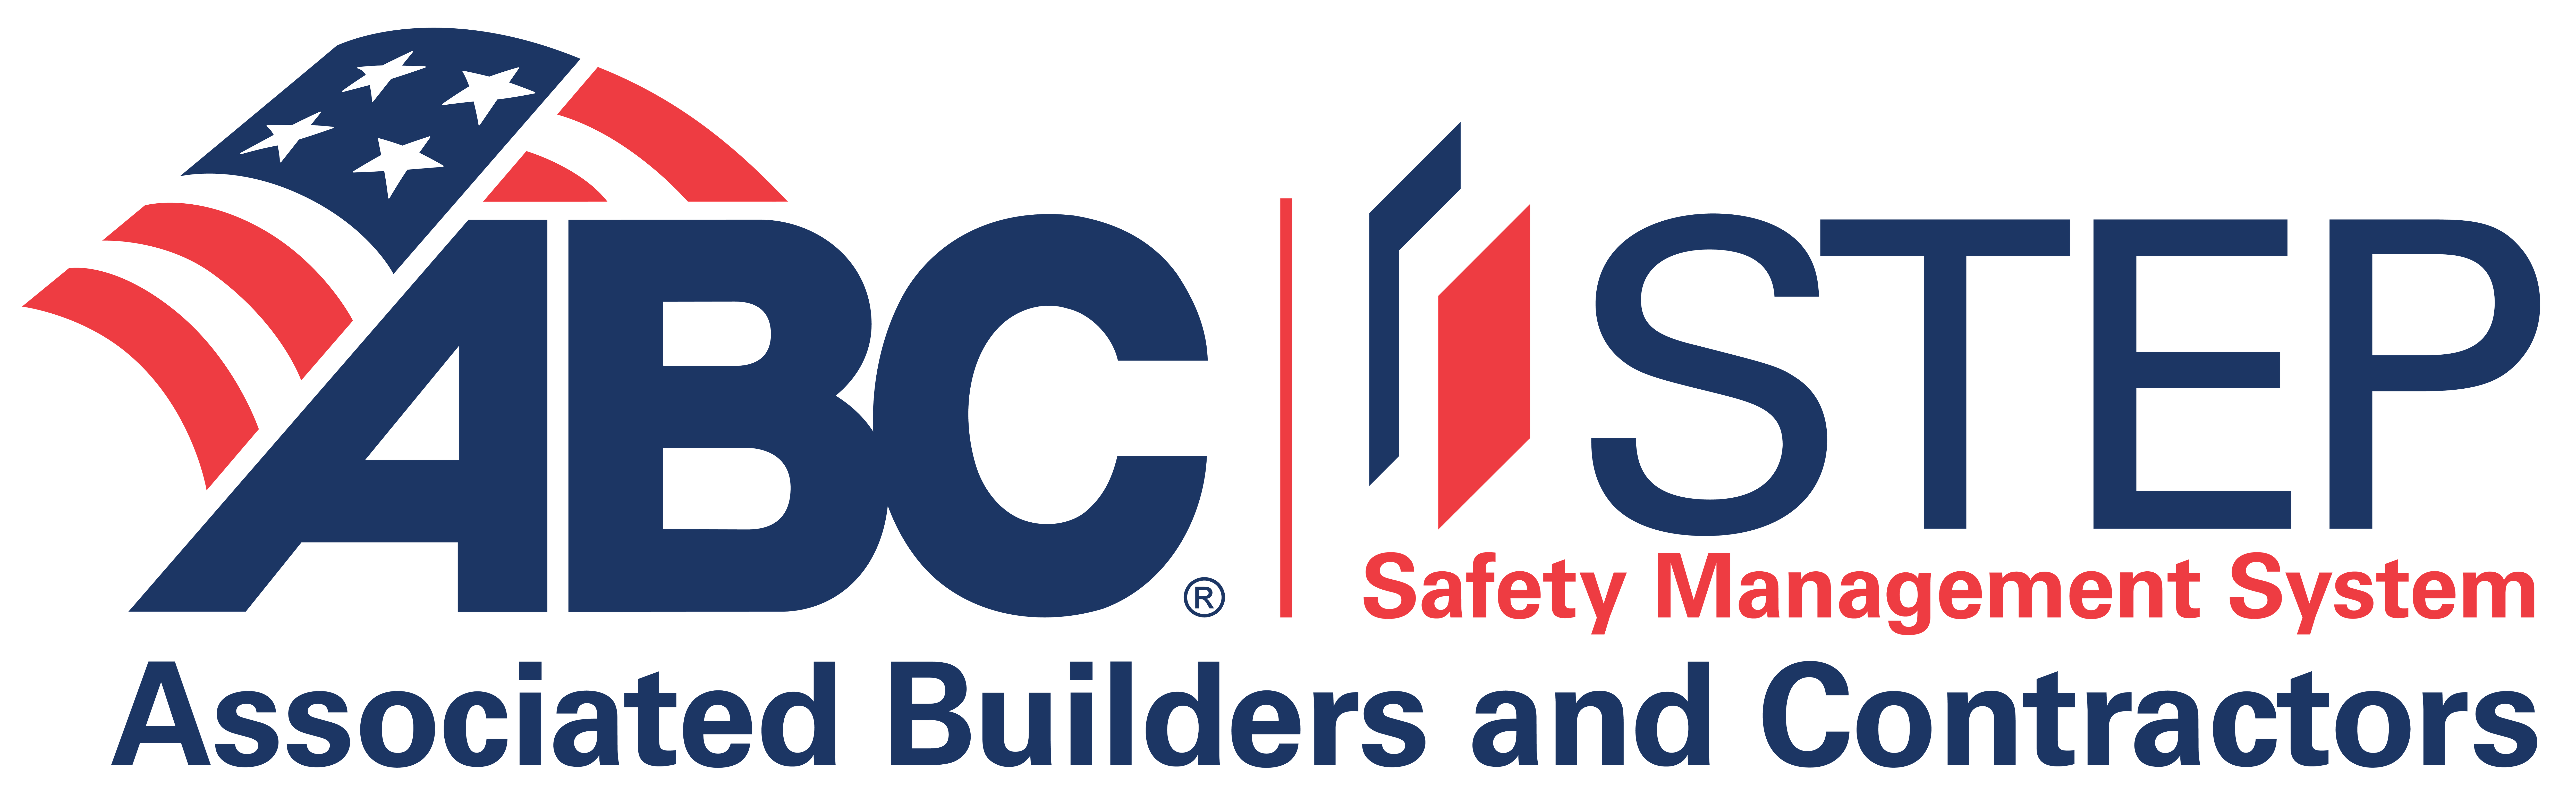 Associated Builders and Contractors Safety Management System (STEP)